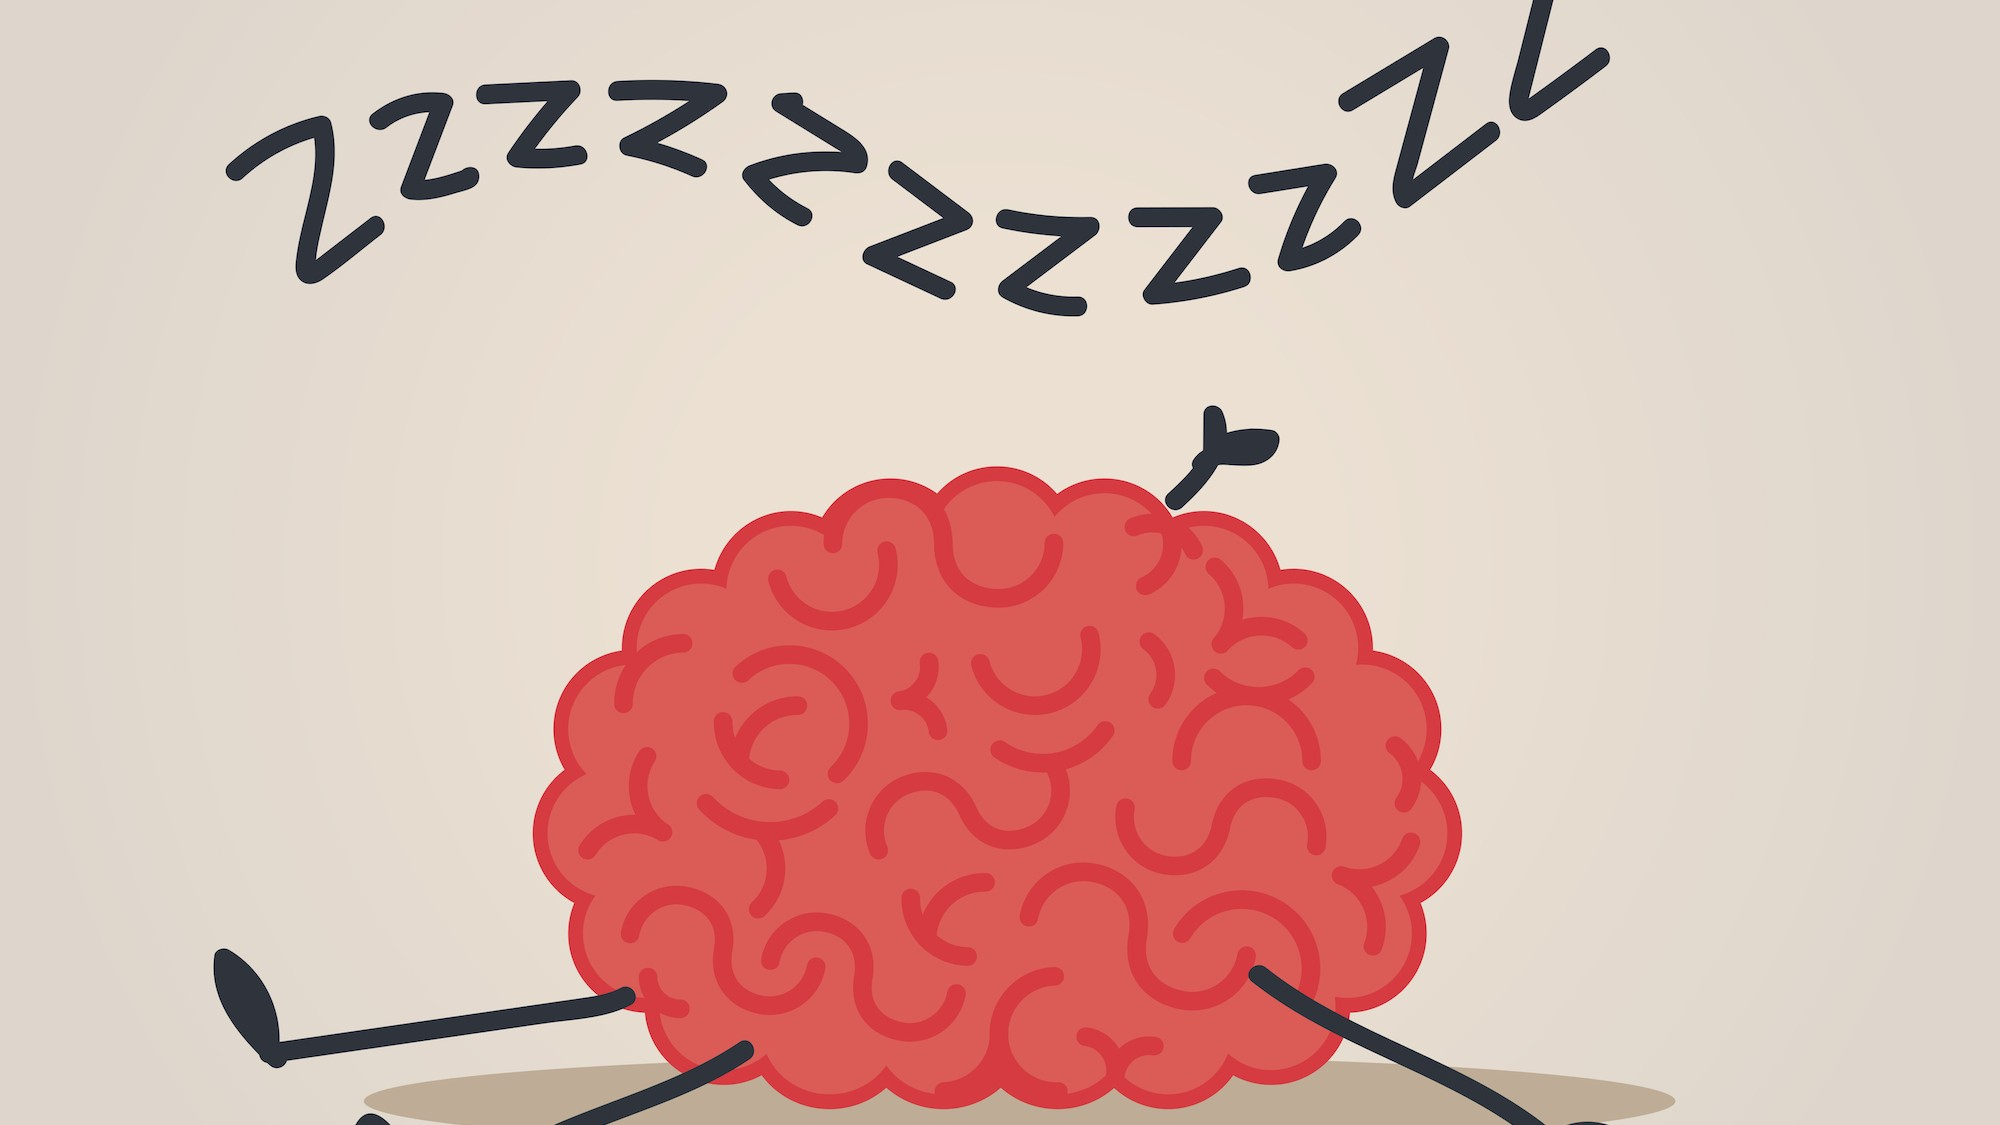 ​What a Night of Sleep Deprivation Does to Your Brain